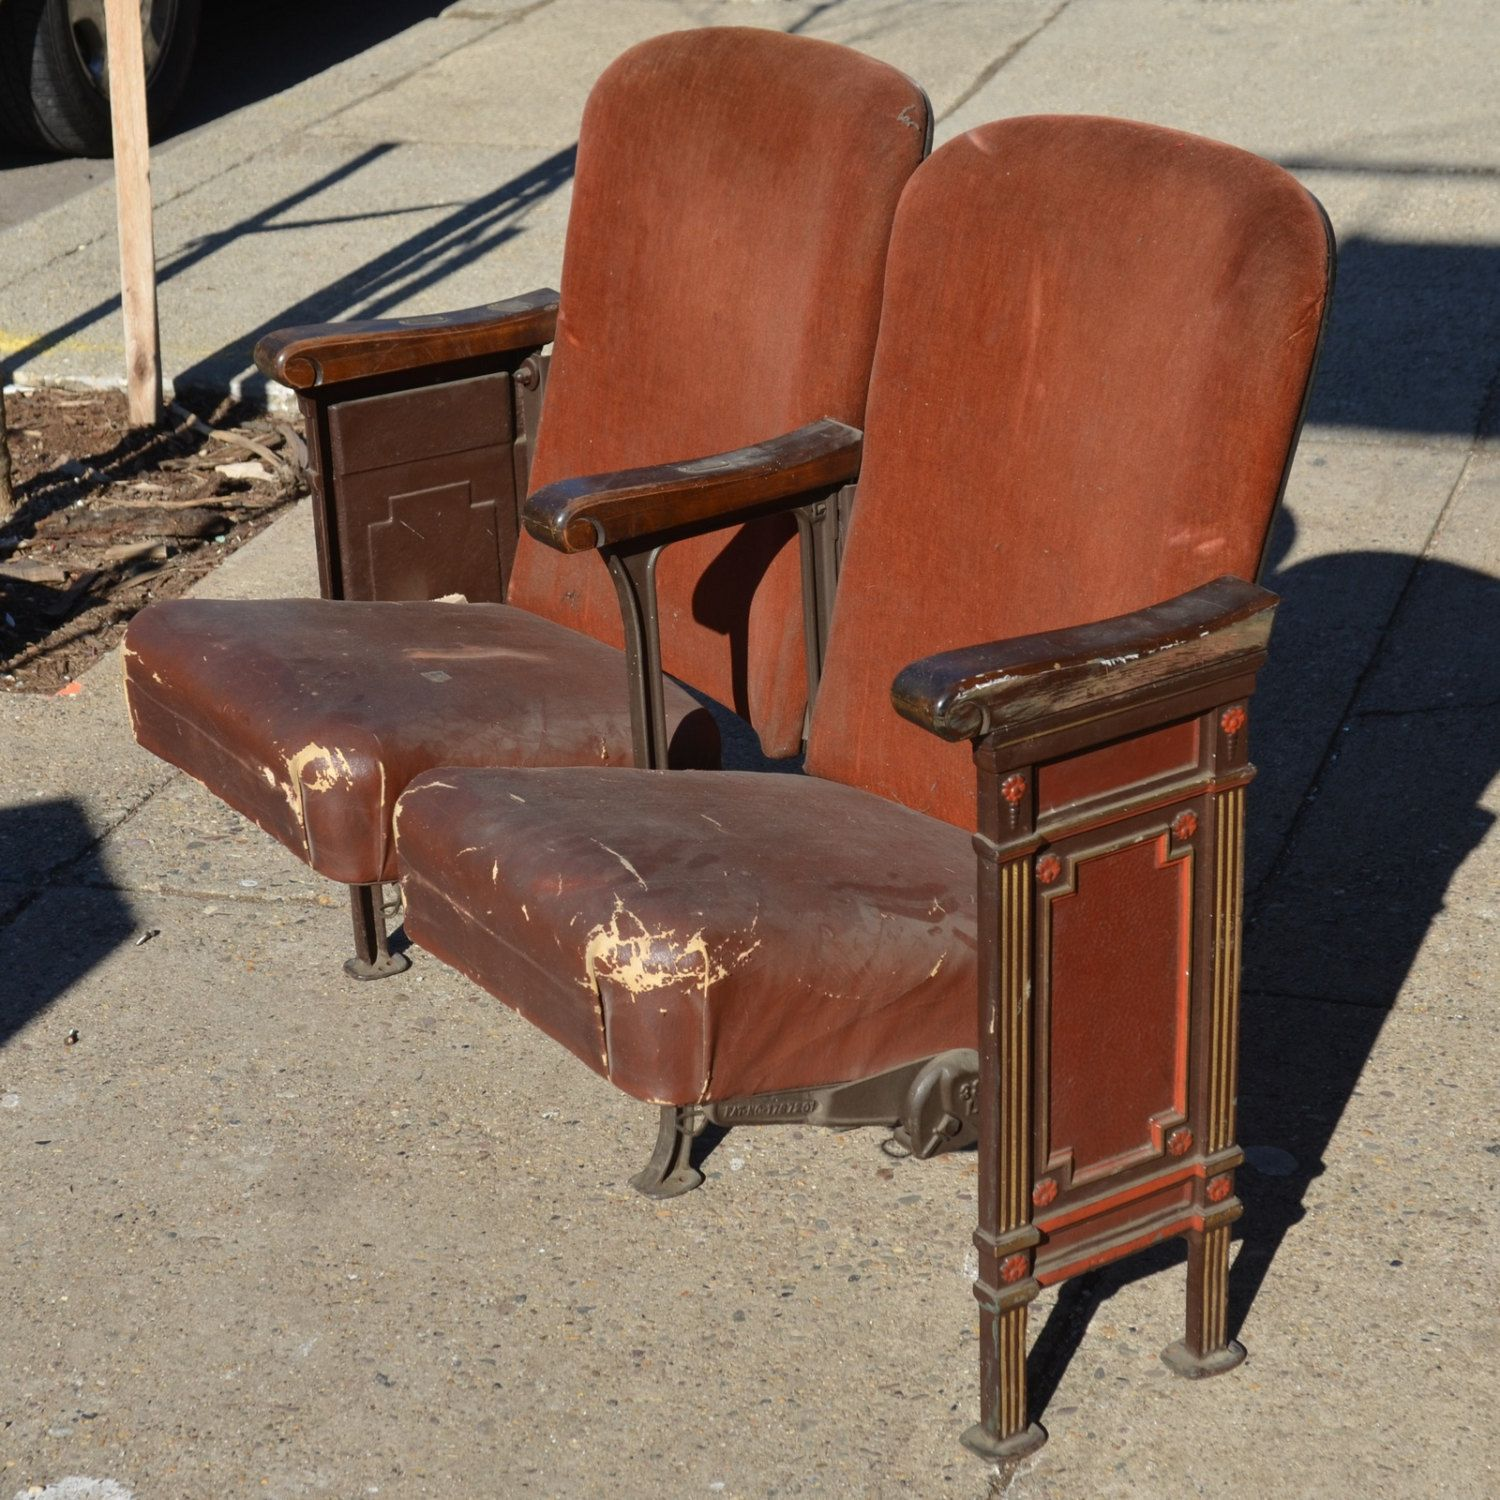 Antique theater chairs - Vintage Theater Opera Seats From Ford S Theater By Phillysalvage 296 55